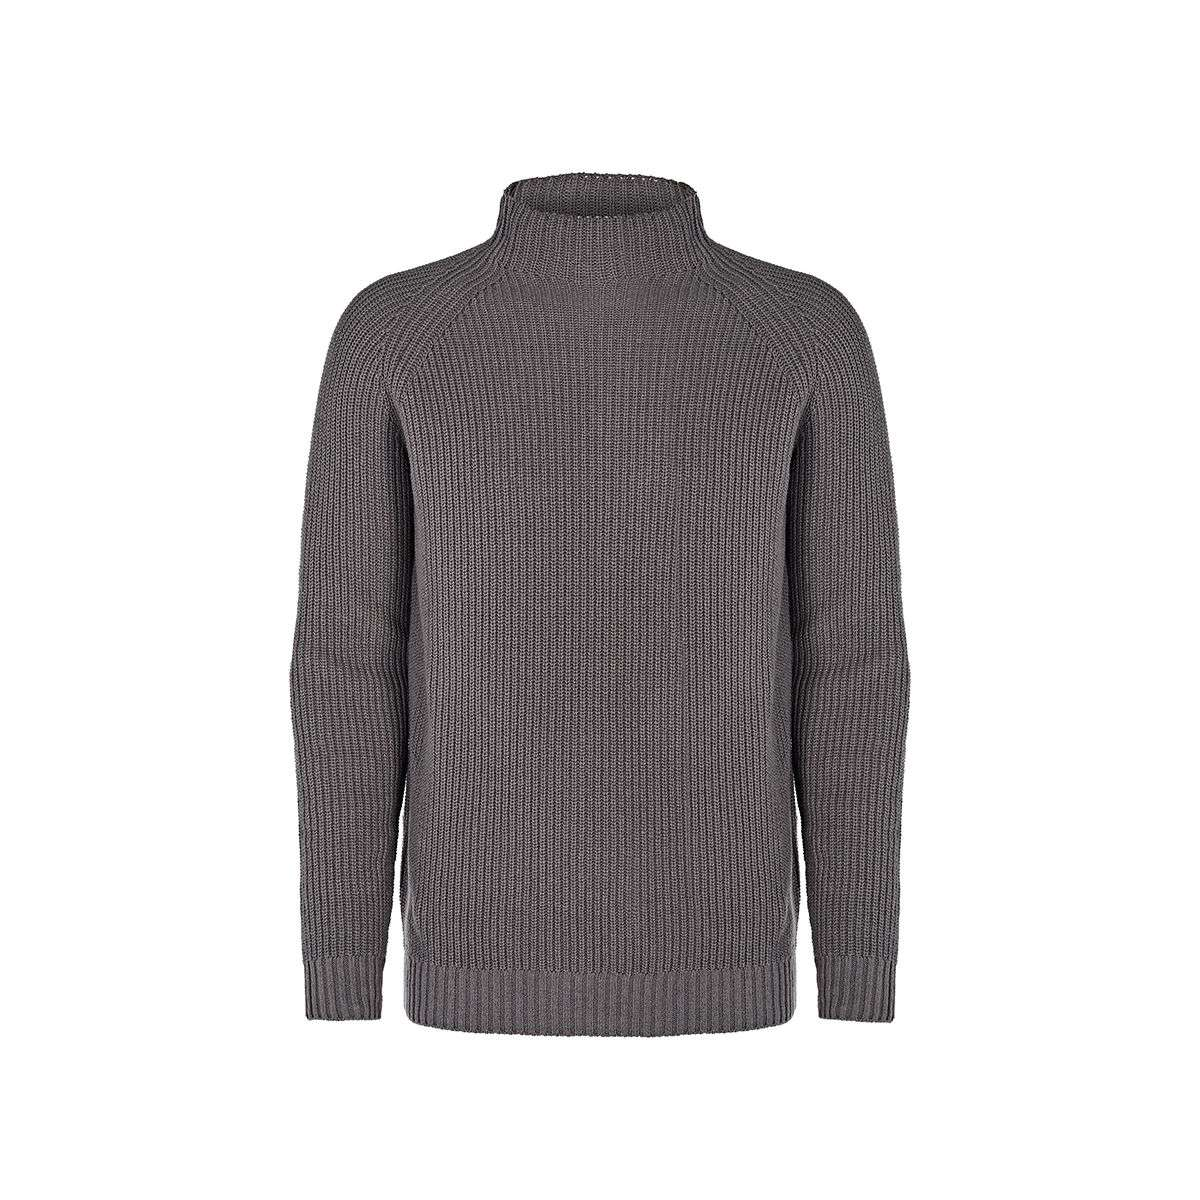 Will's Vegan Store Recycled Slouch Knit Mockneck